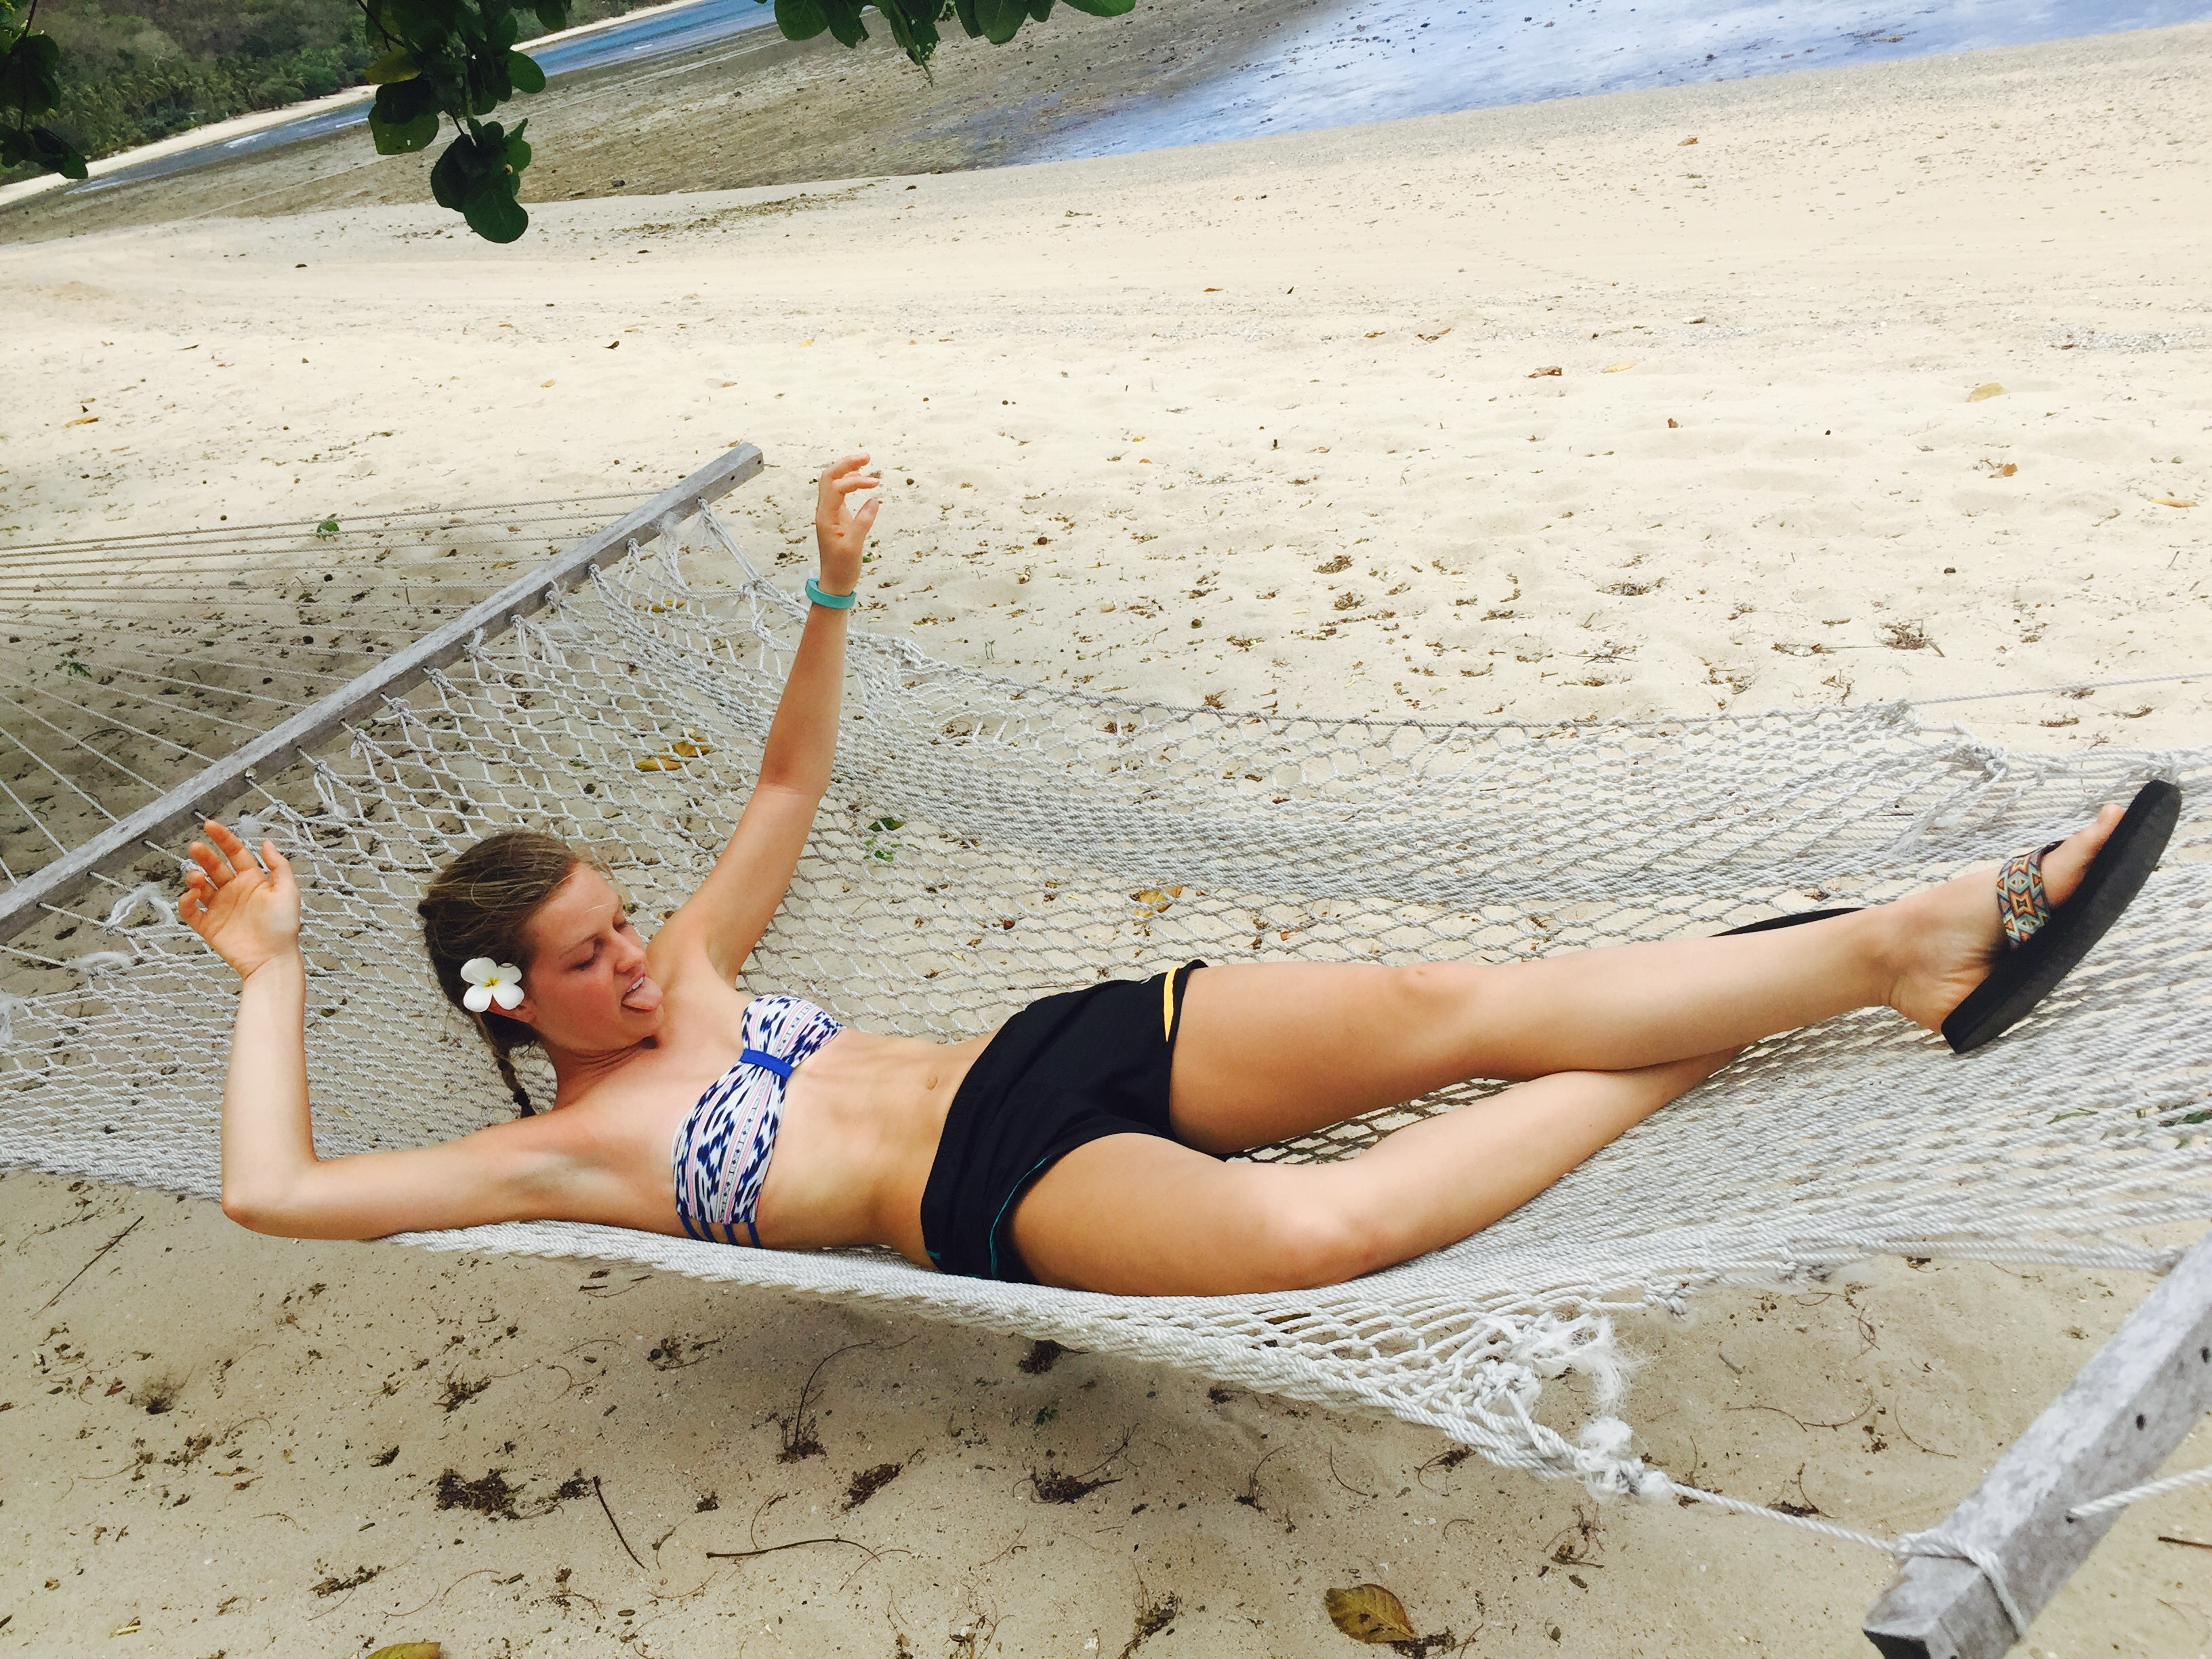 Wait, how do you even get out of a hammock?